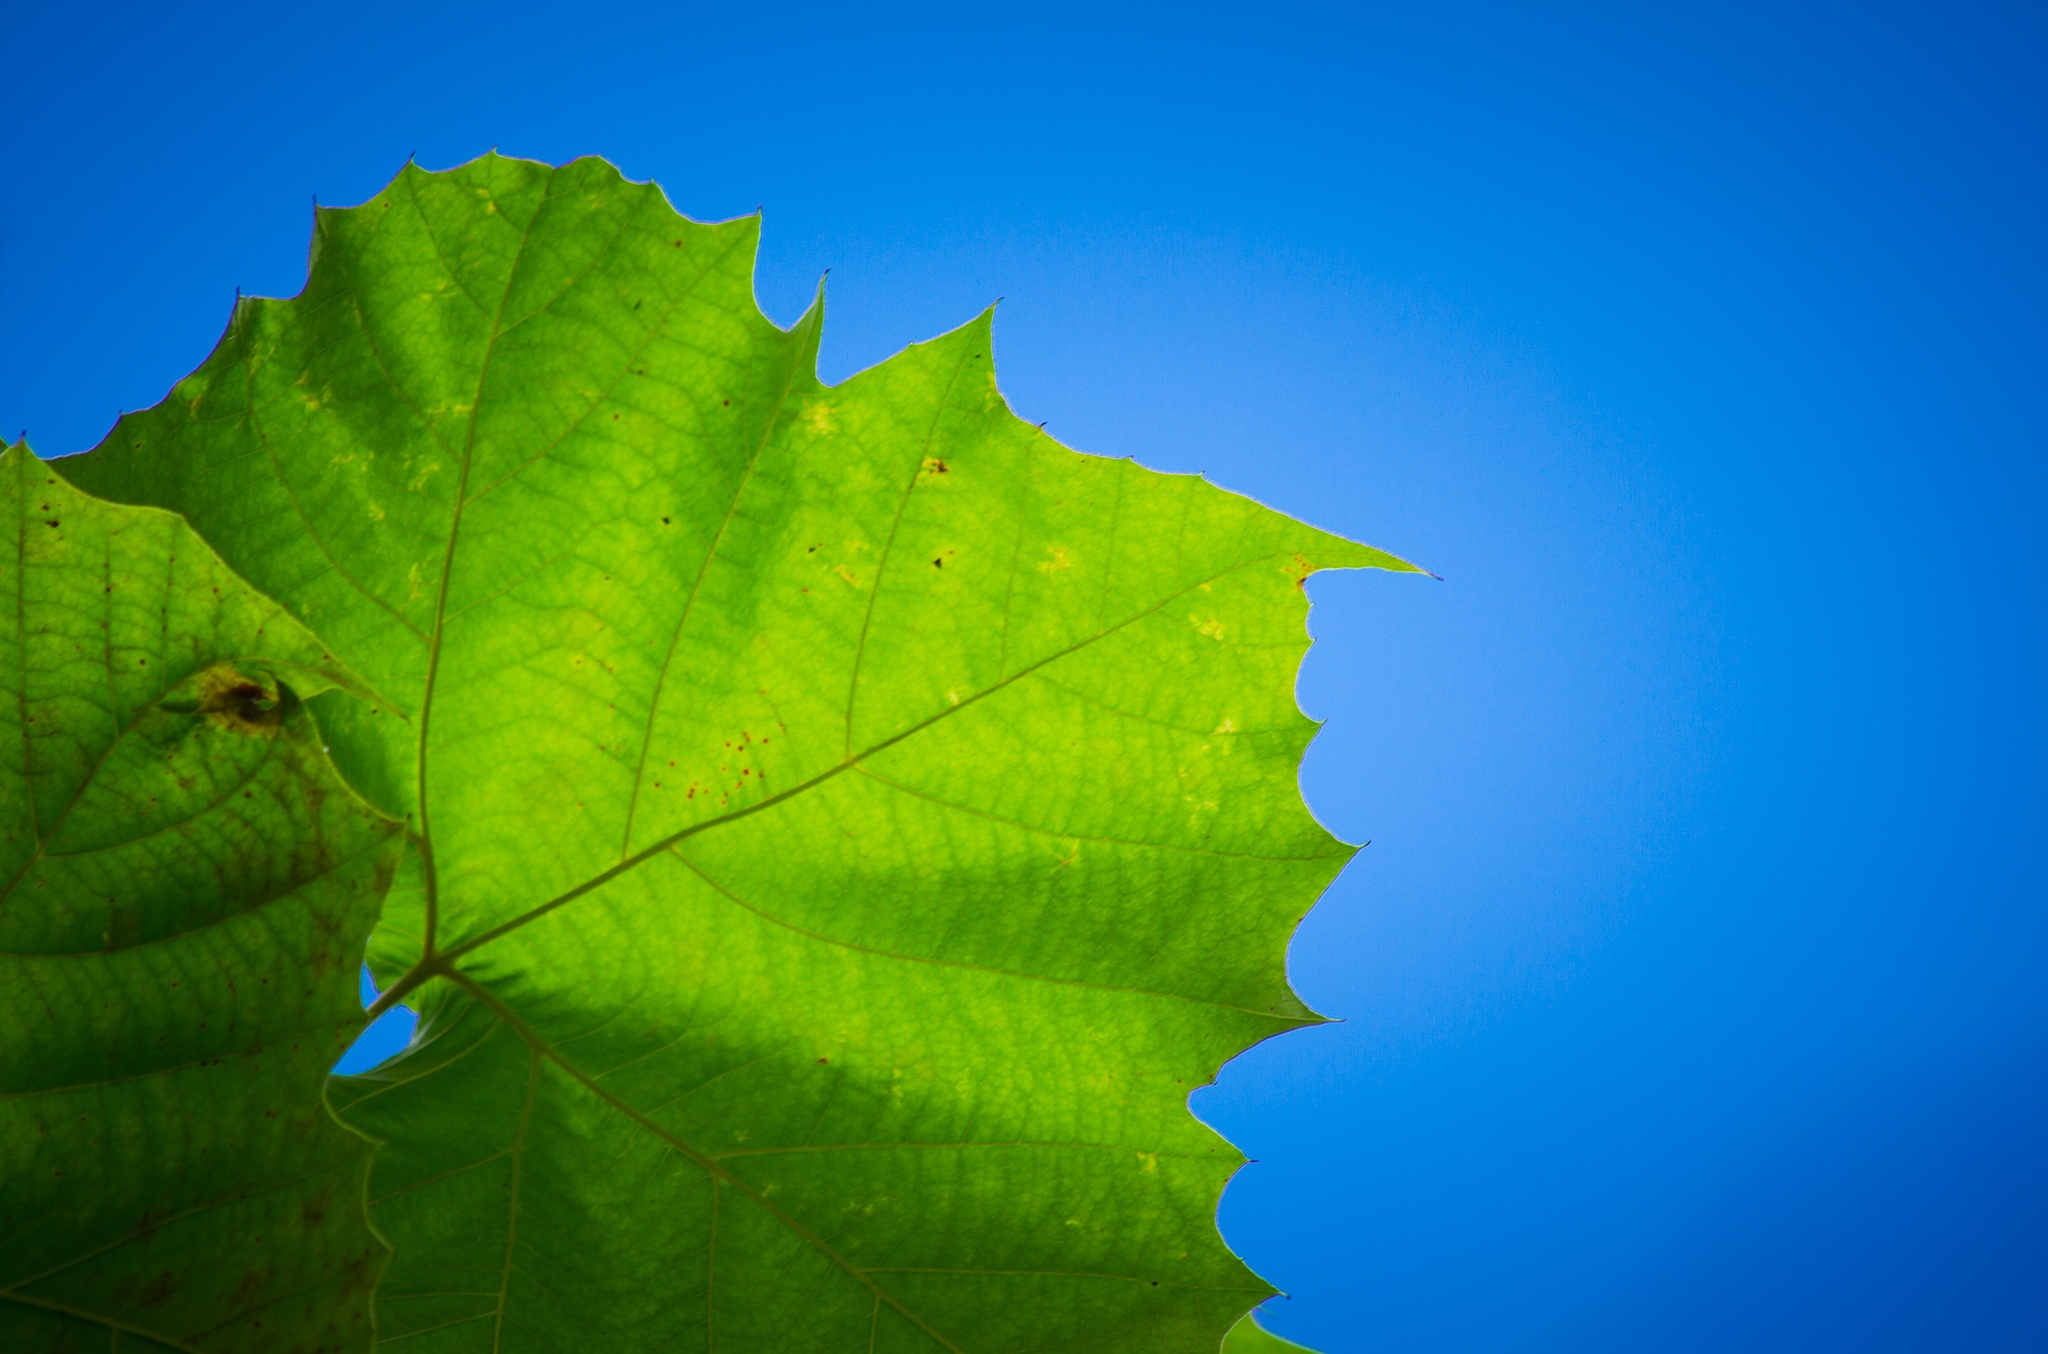 The Green Leaf by In Focus 5.6 Photography